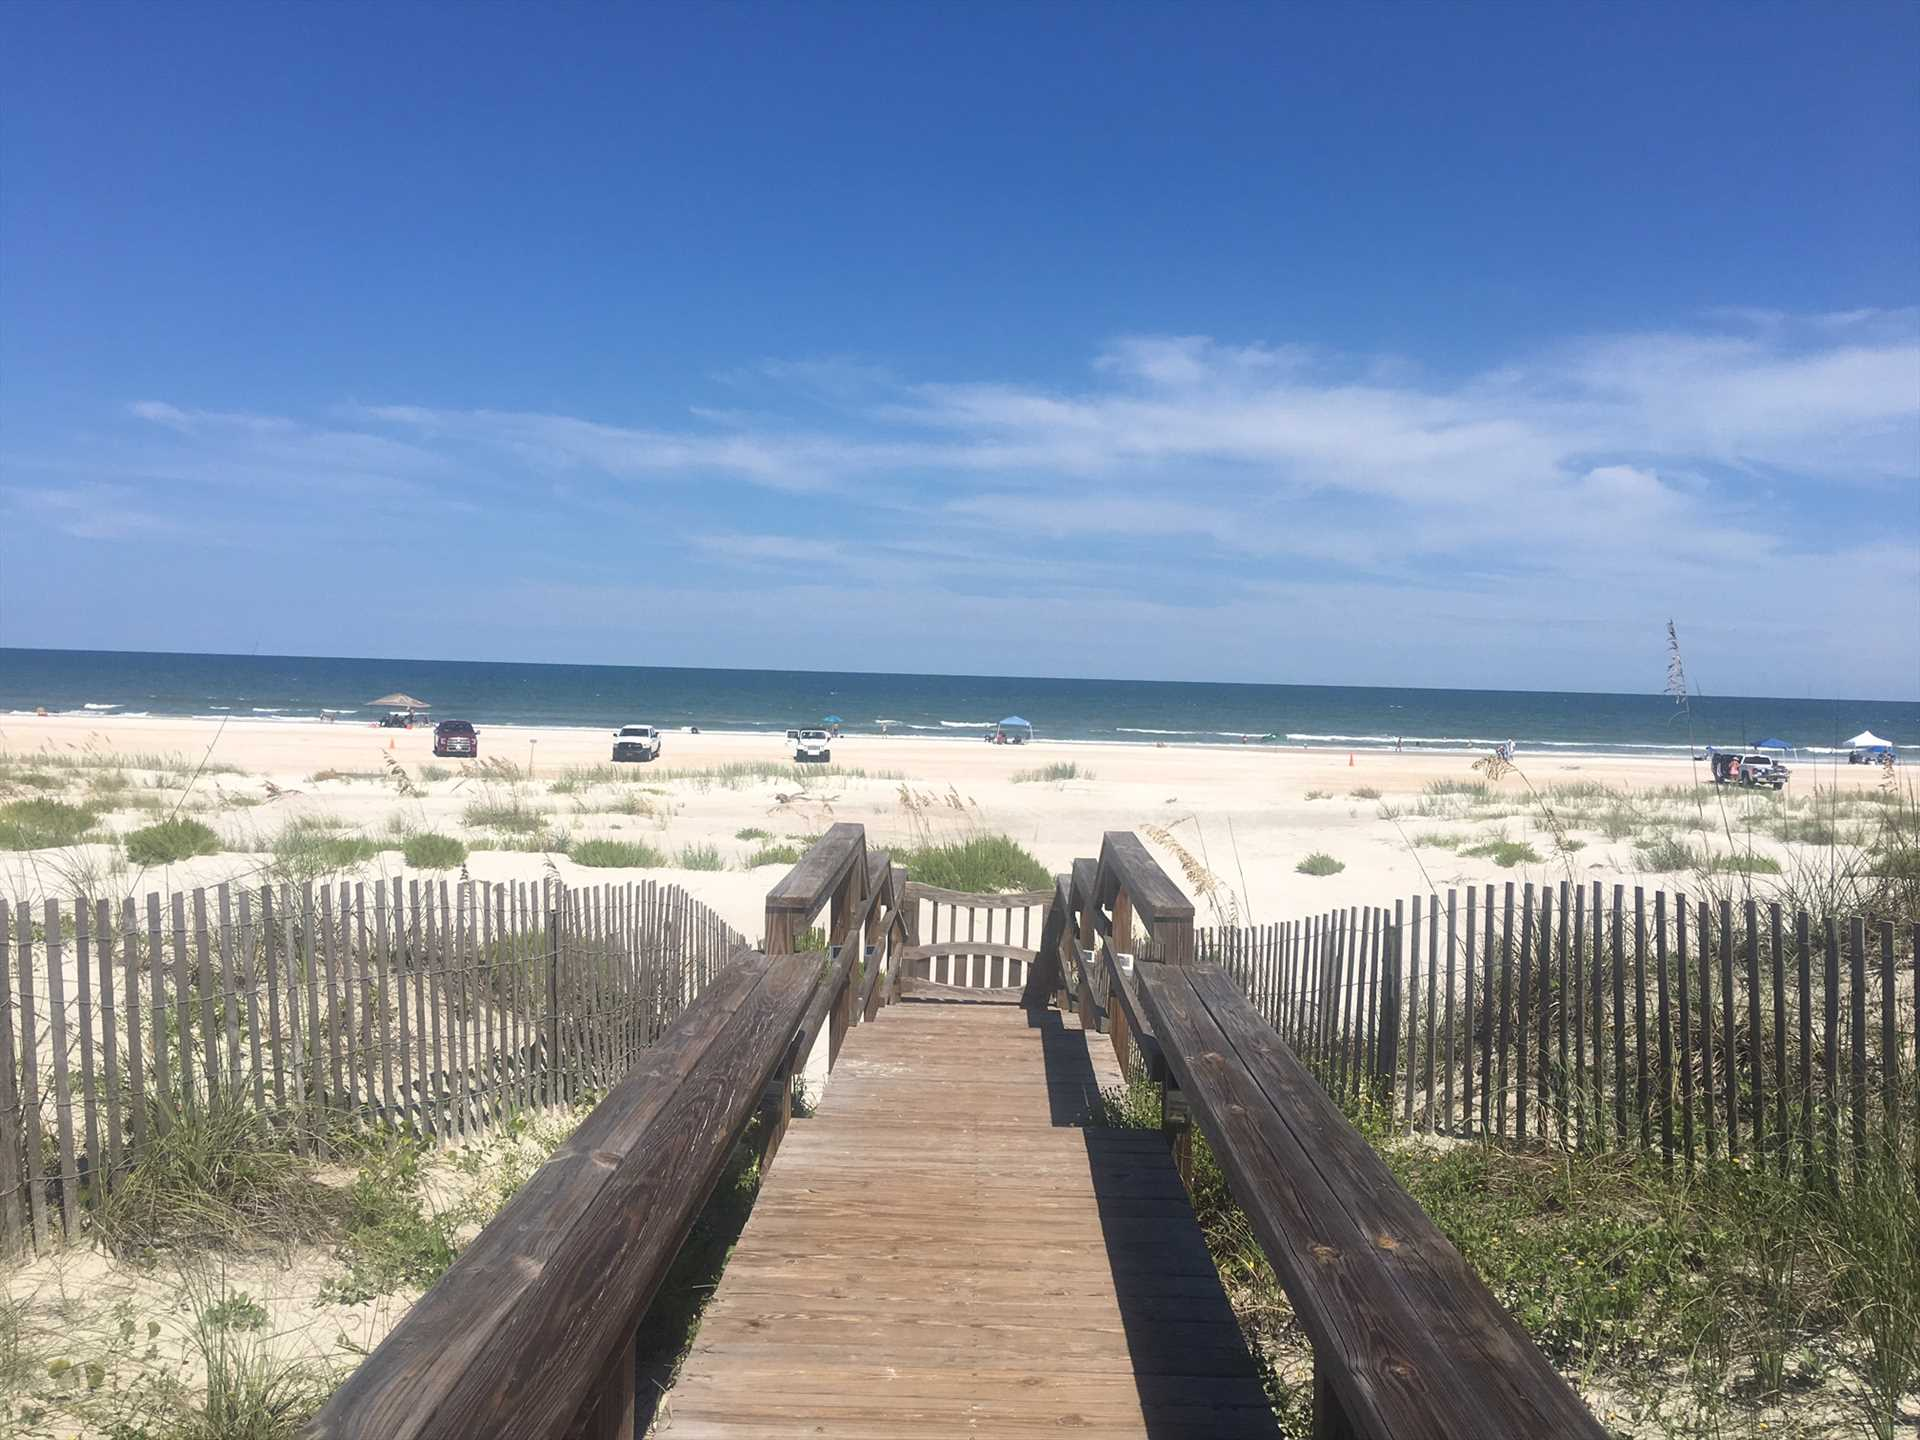 Boardwalk to Beach/Ocean